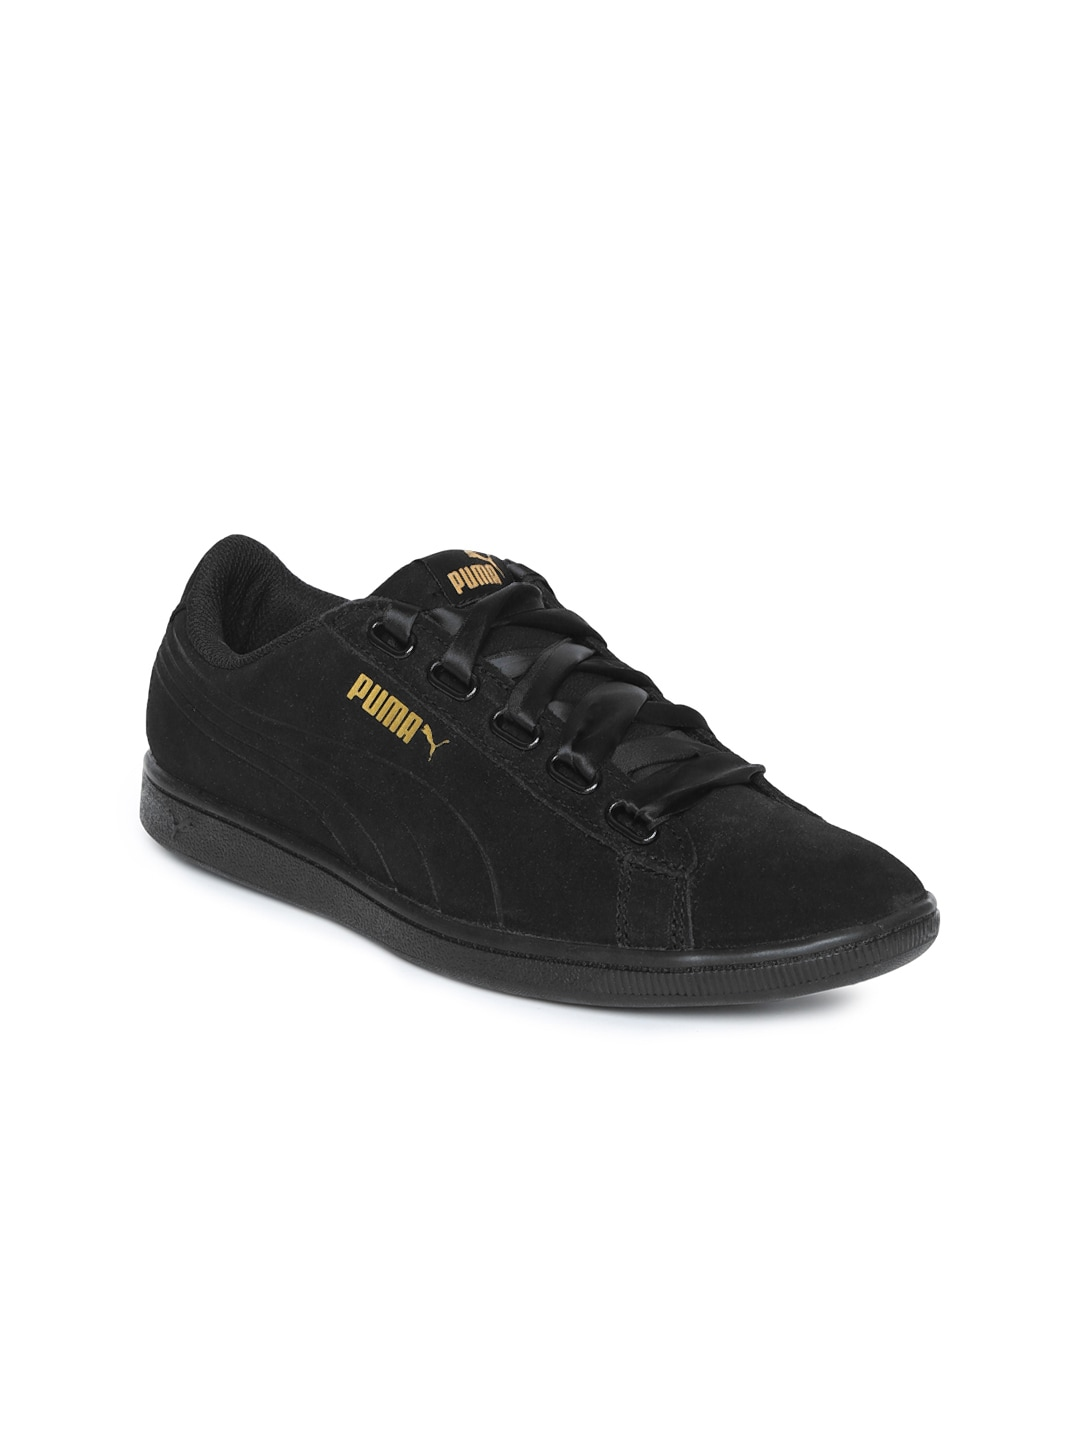 fc2ac7a03022 Puma Suede Shoes - Buy Puma Suede Shoes online in India